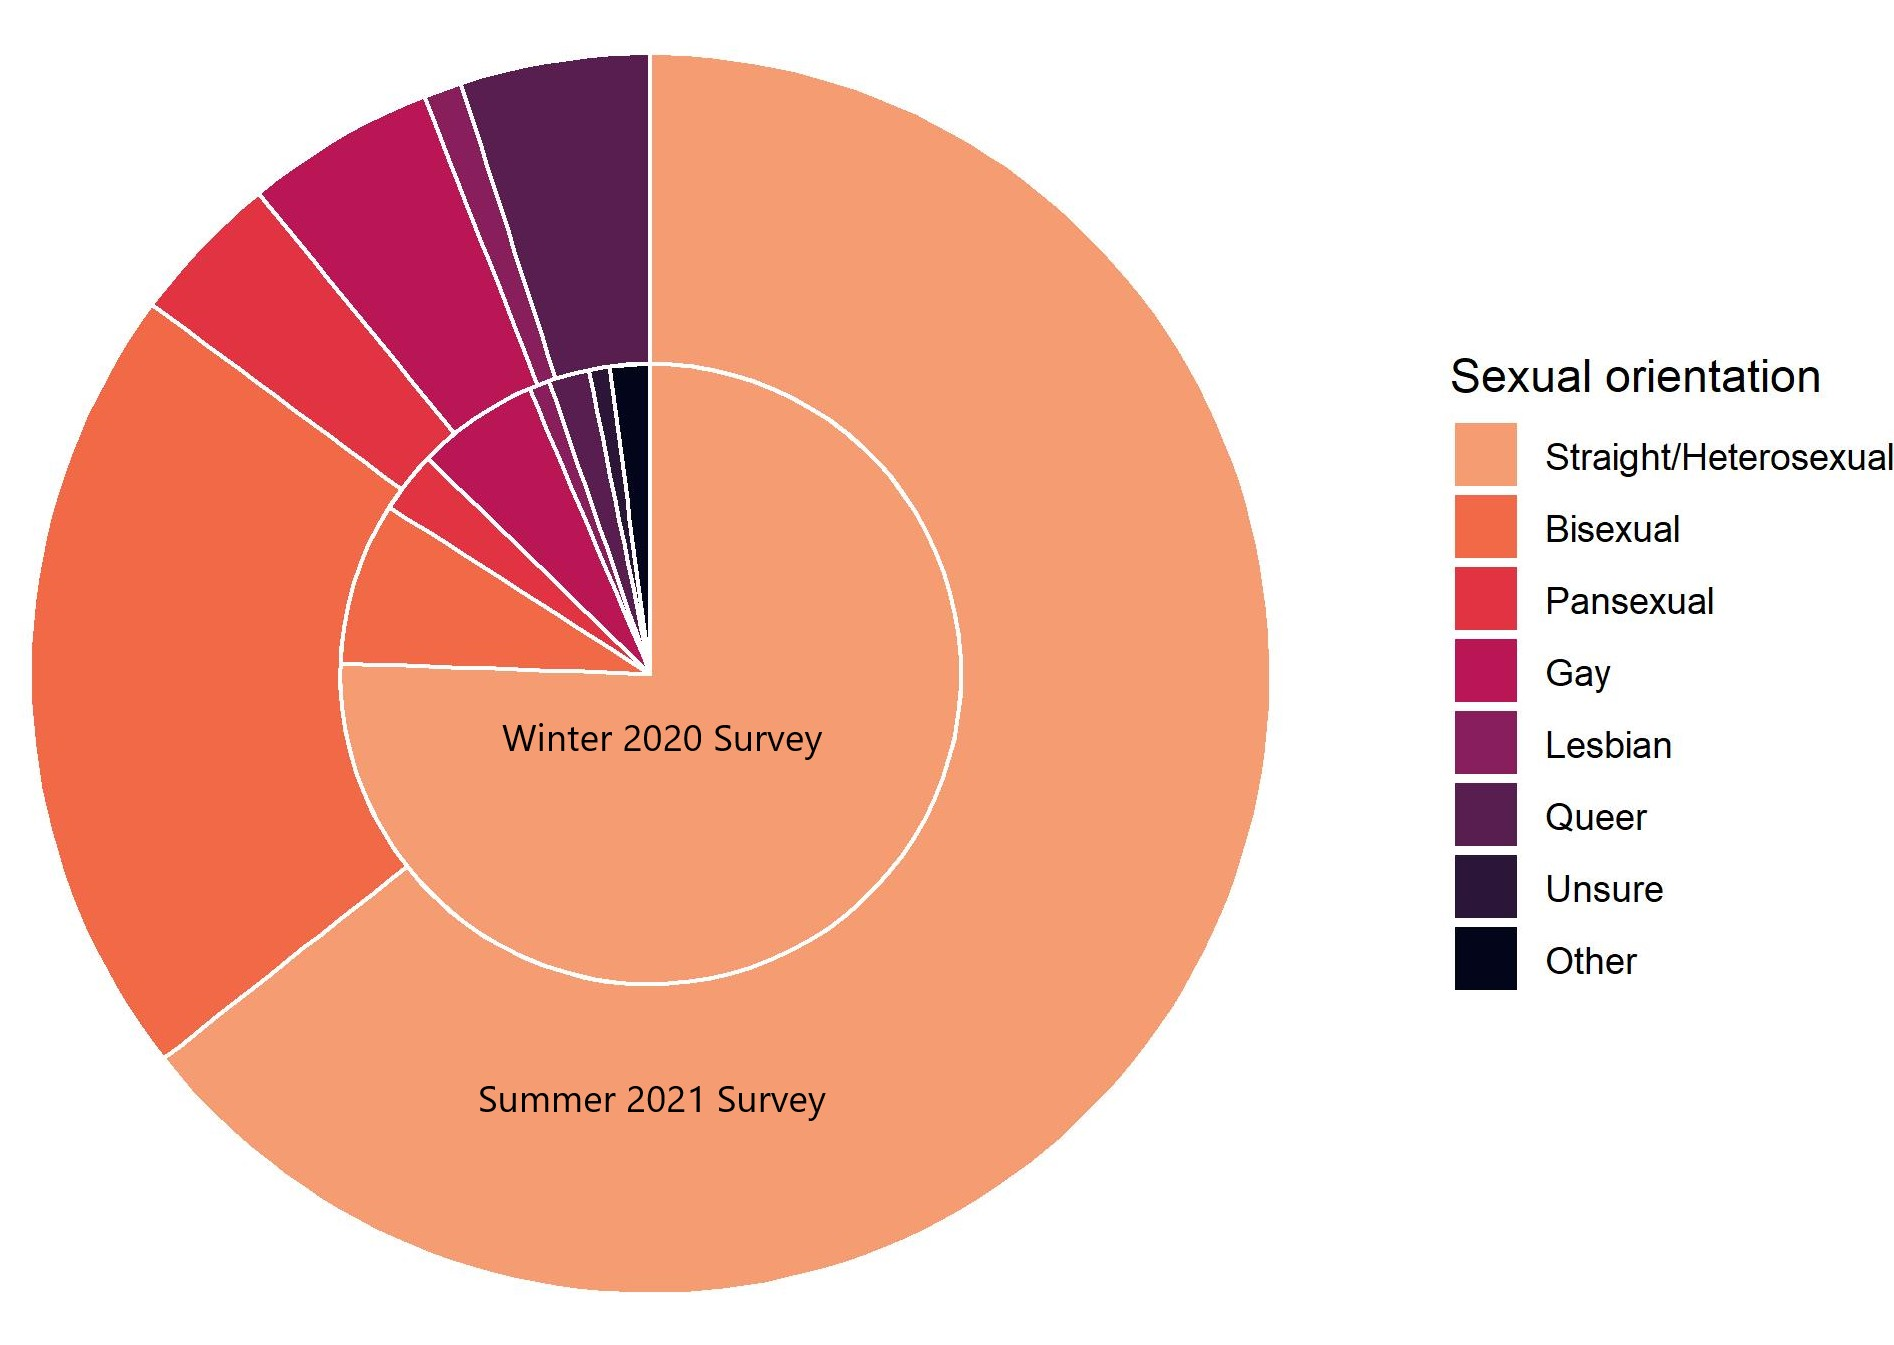 2 stacked pie-charts, showing the proportion of LGB self-identified individuals from this (Summer 2021) and the previous survey (Winter 2020). The proportion of bisexual respondants has increased, and the proportion of heteroseuxals decreased between the two surveys.